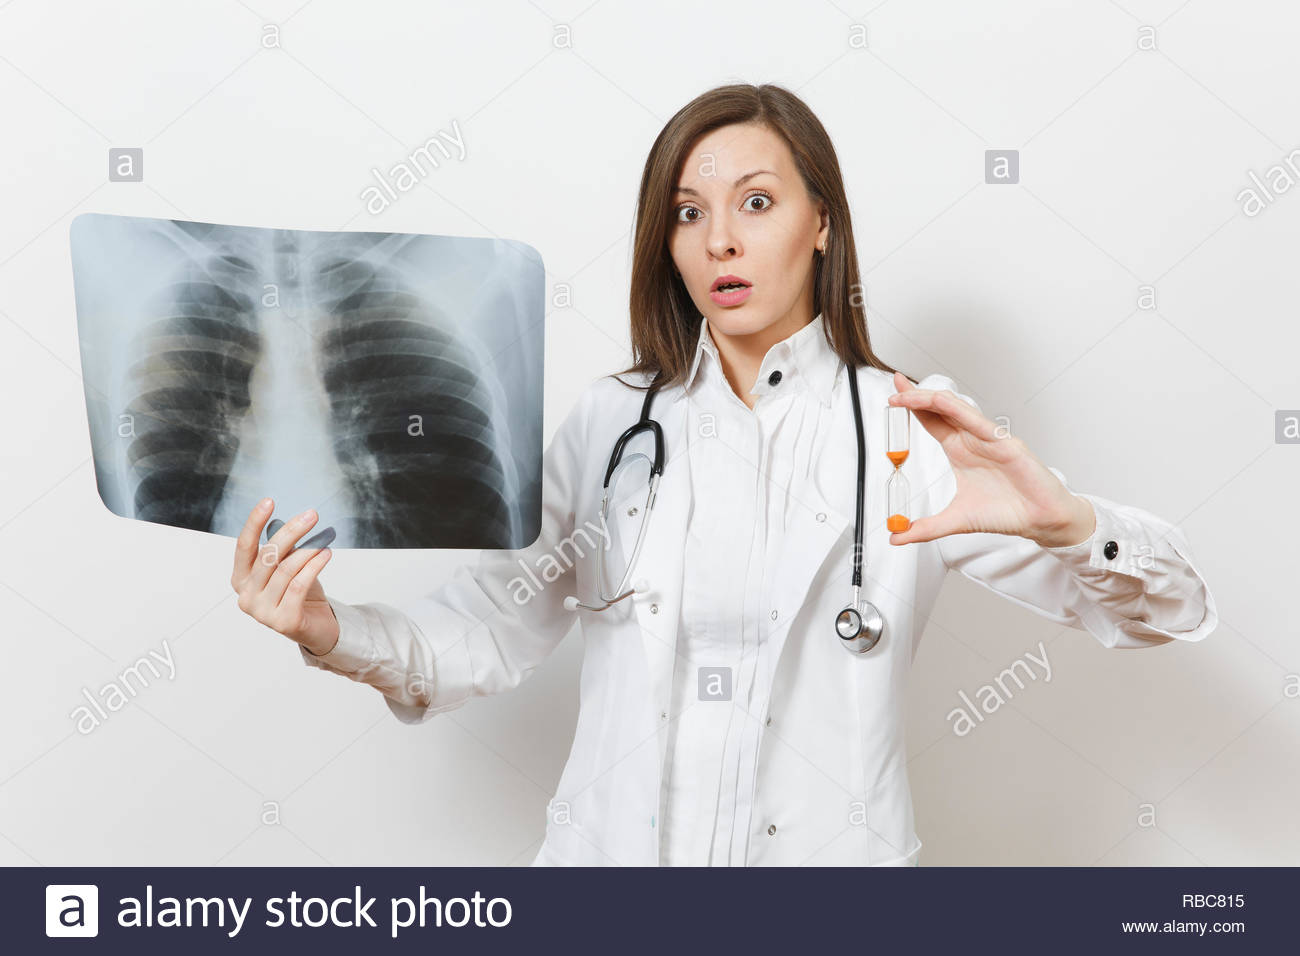 Doctor woman with hourglass, X-ray of lungs fluorography roentgen isolated on white background. Female doctor in medical gown stethoscope. Healthcare personnel time is running out medicine. Pneumonia. - Stock Image